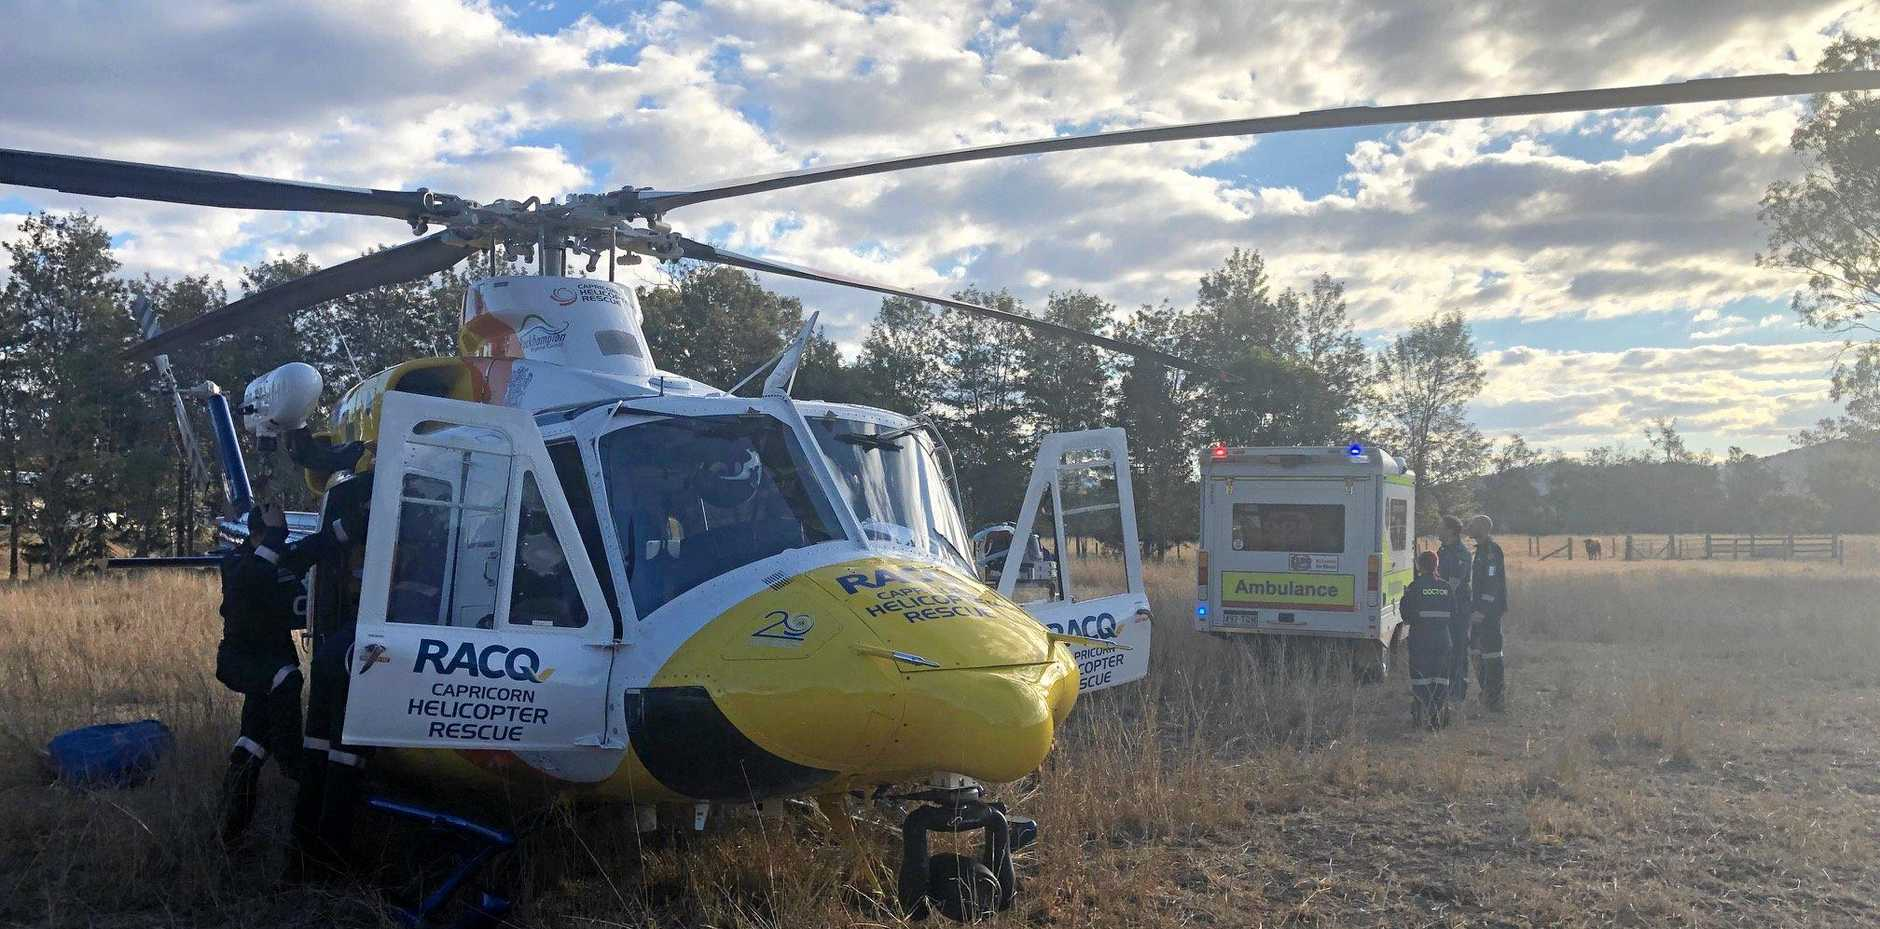 RACQ Capricorn Rescue was tasked to a rural property, about 104km south of Rockhampton, for a woman in her mid-20's who had suffered a spinal injury whilst falling off a horse.